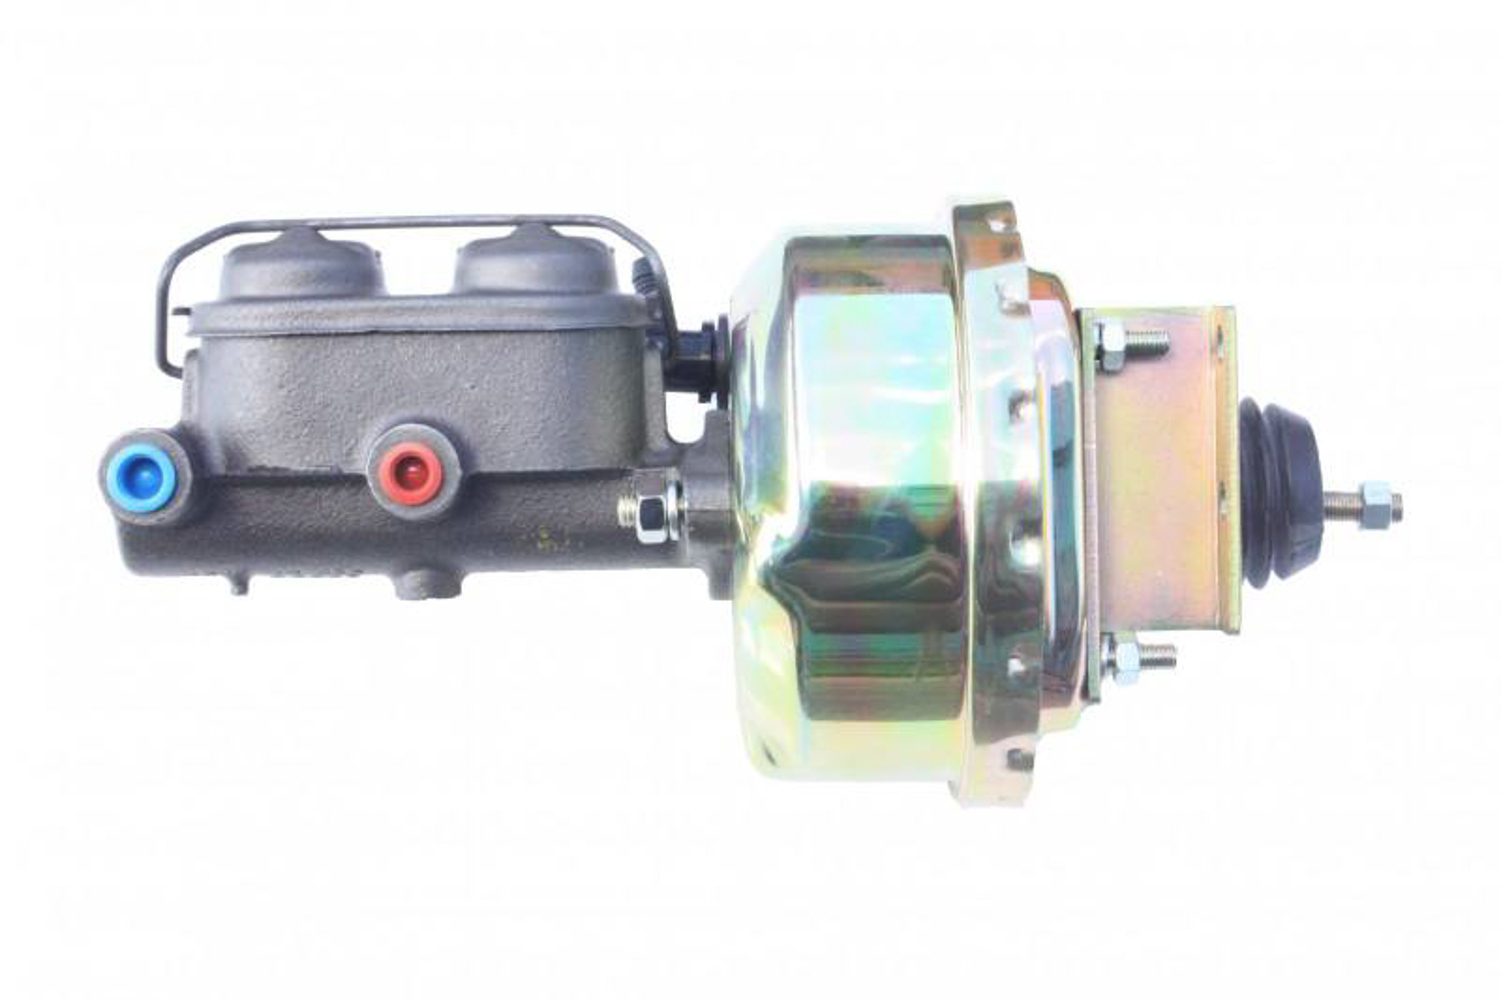 Leed Brakes 7 in Power Booster 1in Bore Master Cylinder